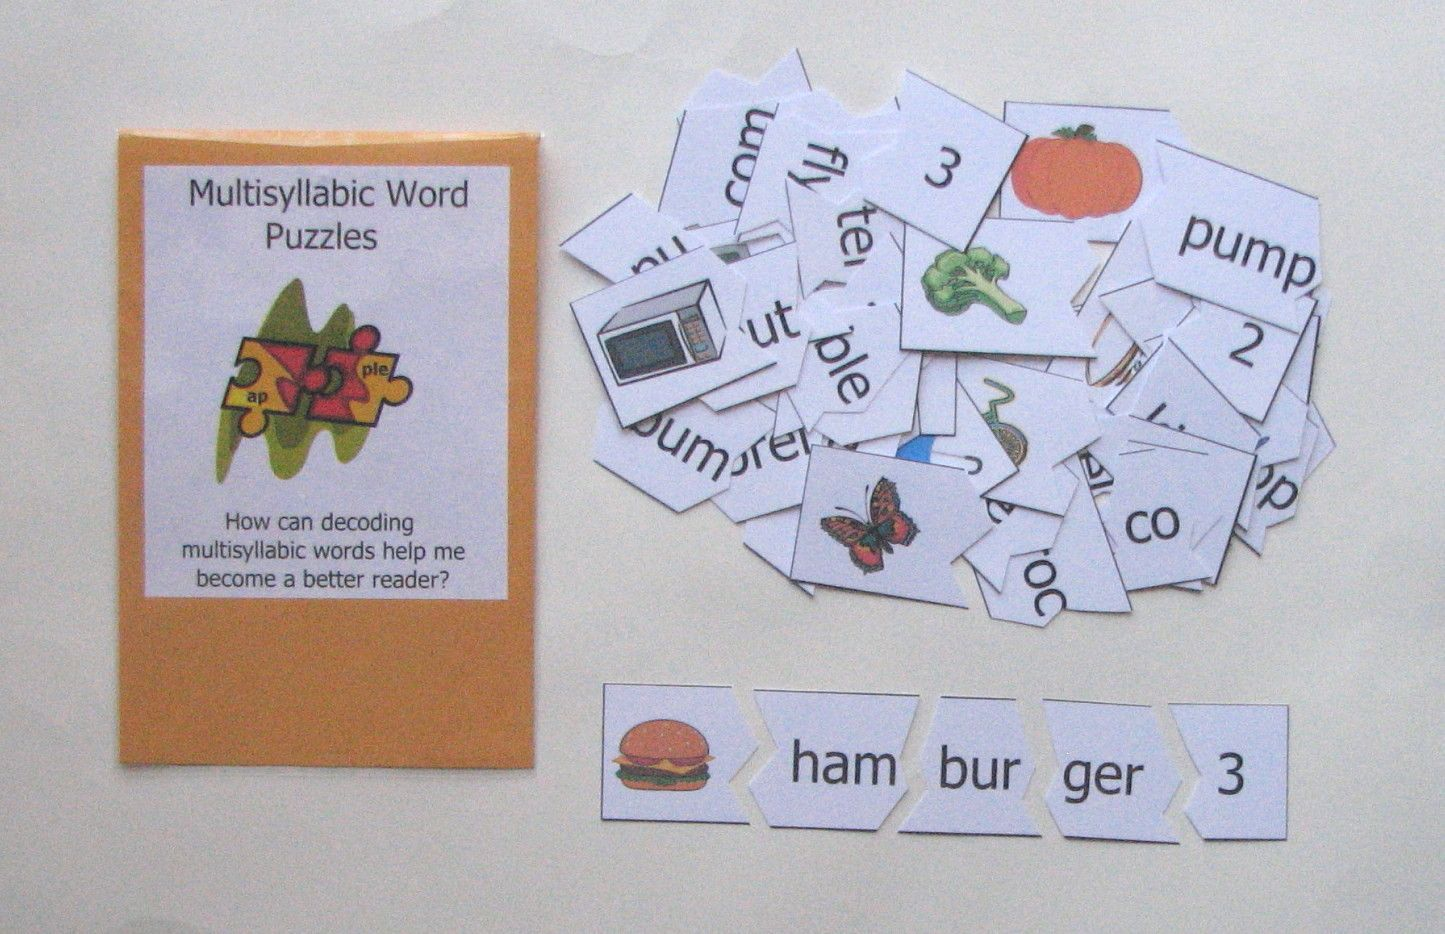 Multisyllabic Word Puzzles Help Students Practice And